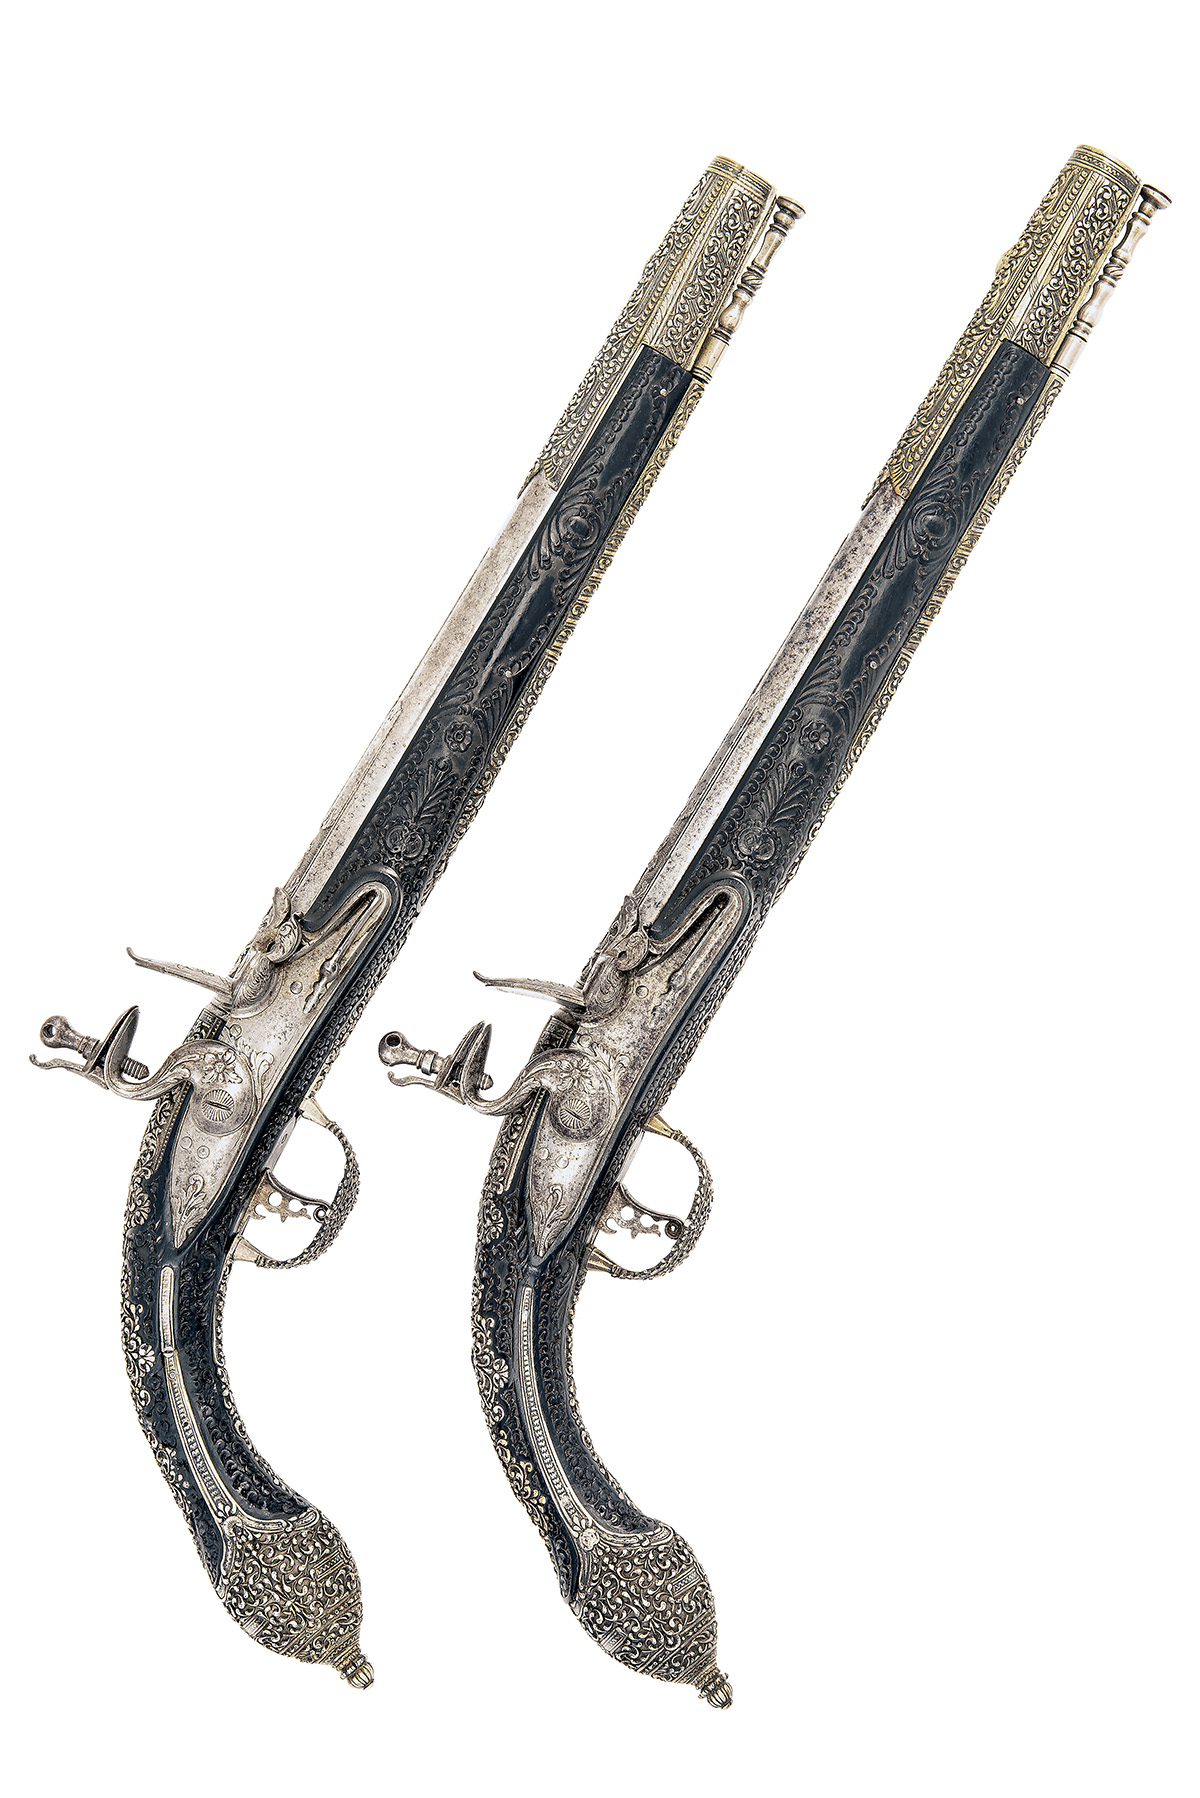 A FINE PAIR OF 22-BORE FLINTLOCK HOLSTER-PISTOL WITH EBONY STOCKS AND NIELLO DECORATION, UNSIGNED,